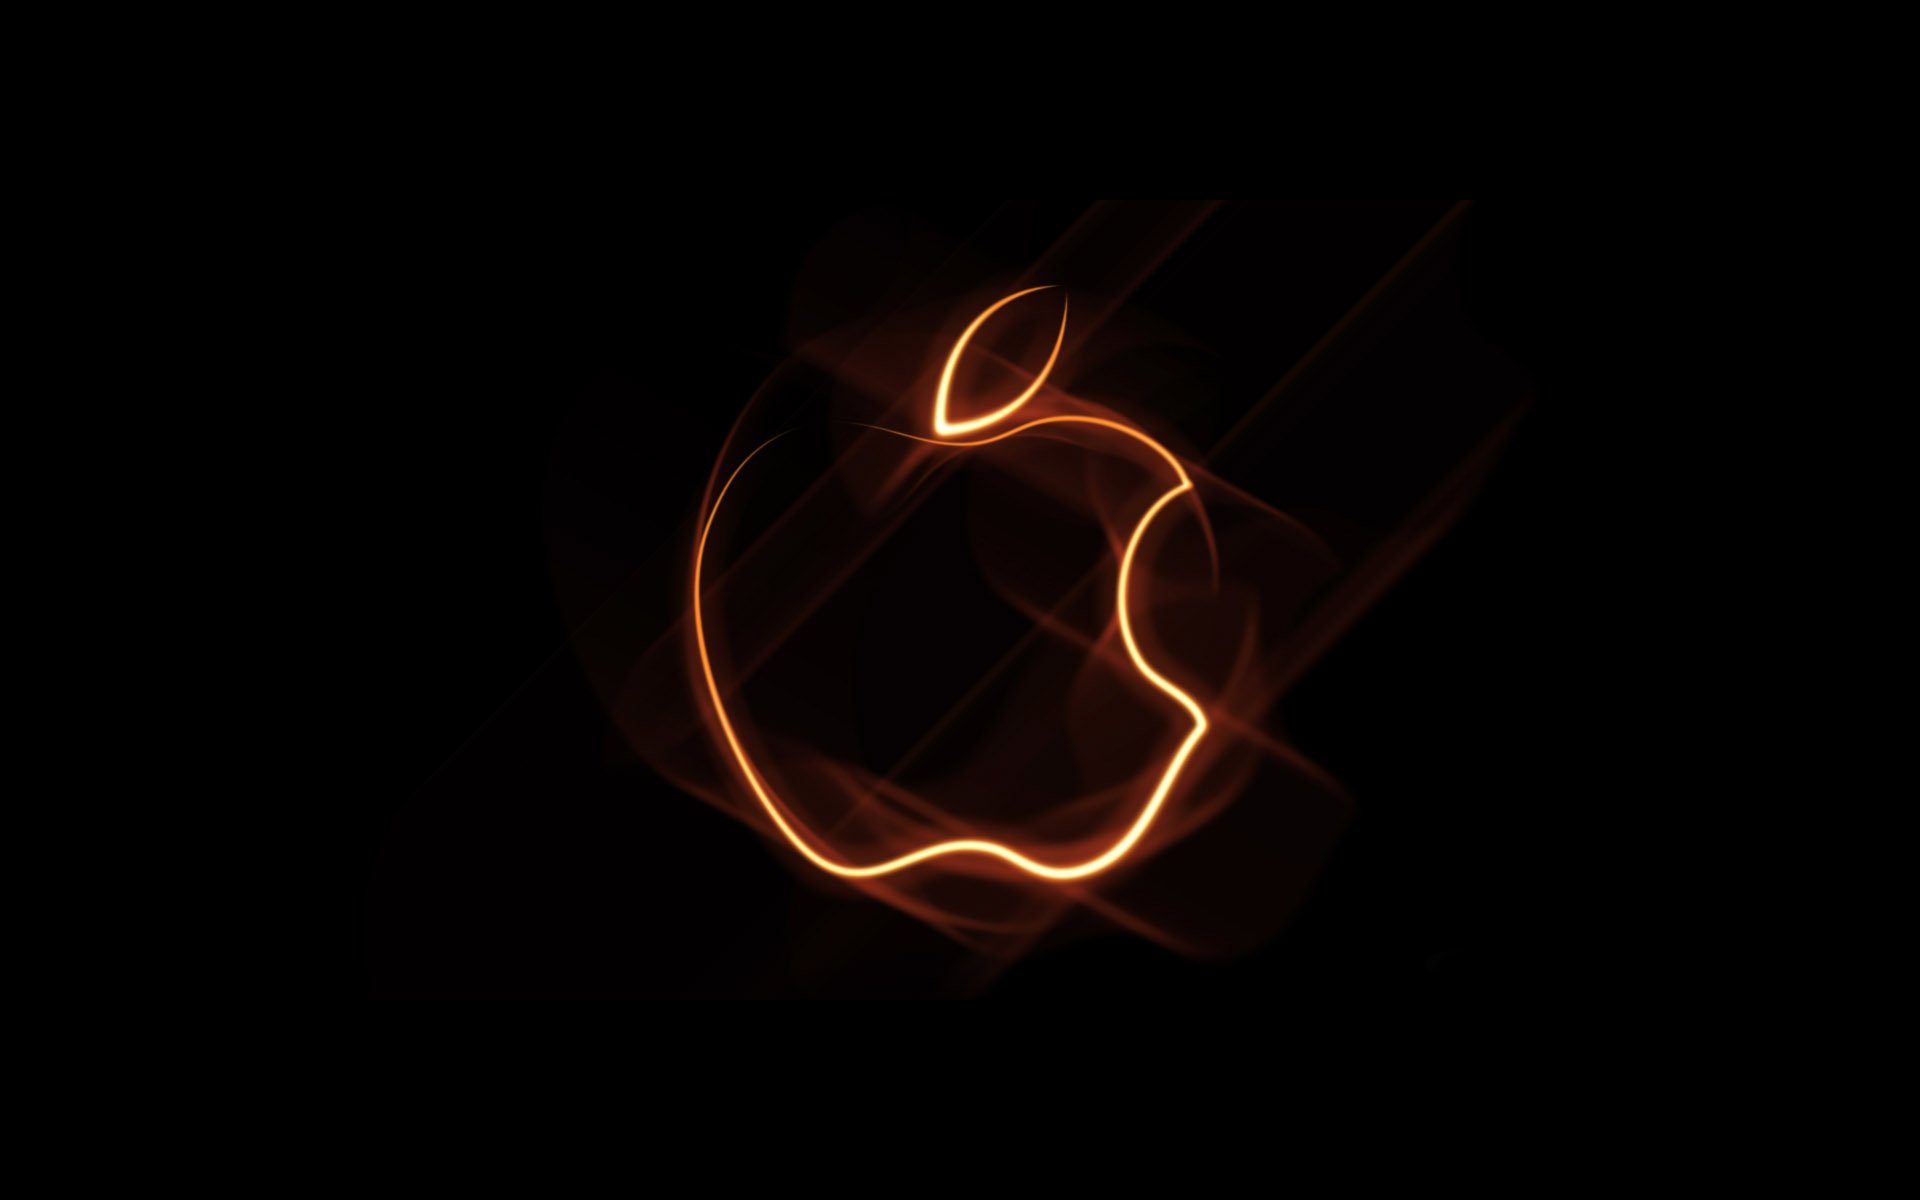 Apple Light Wallpaper